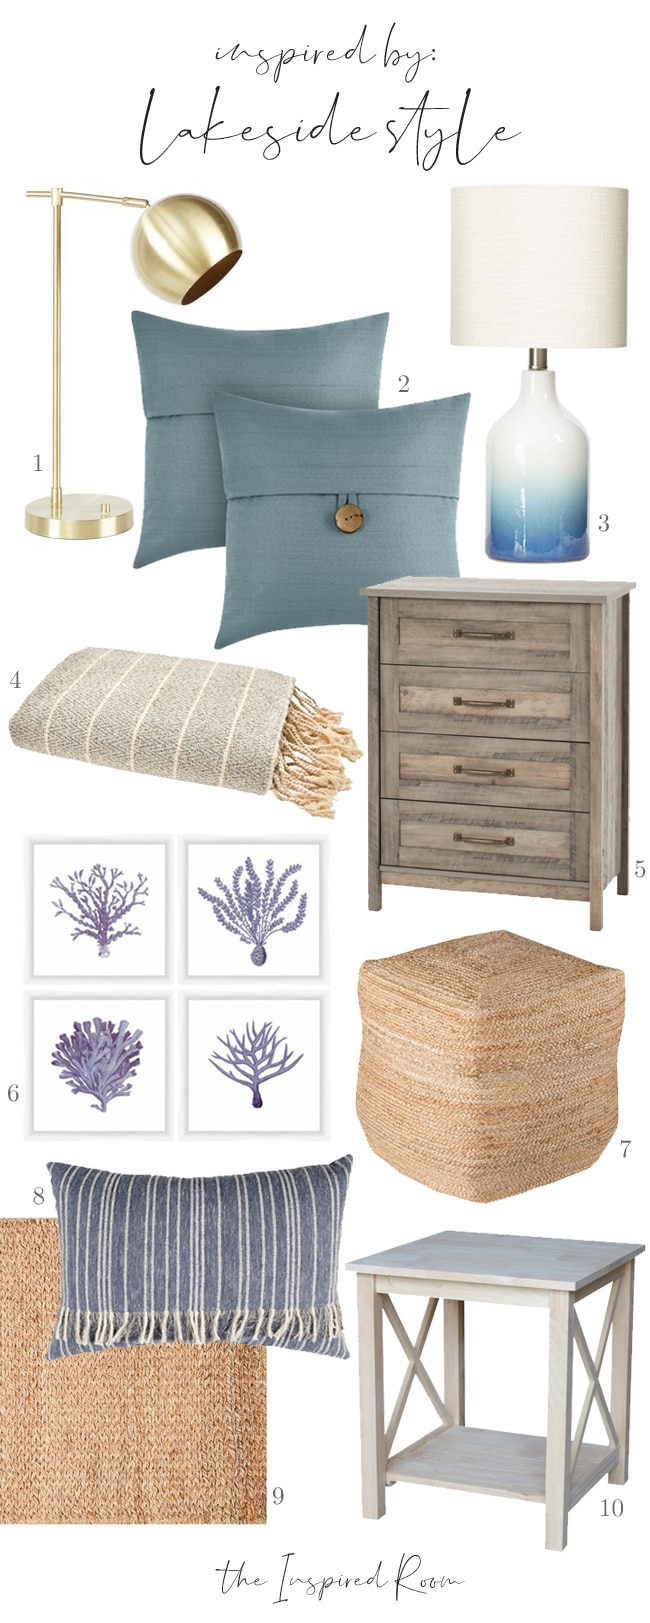 Lakeside Style | Decorating with Walmart Finds